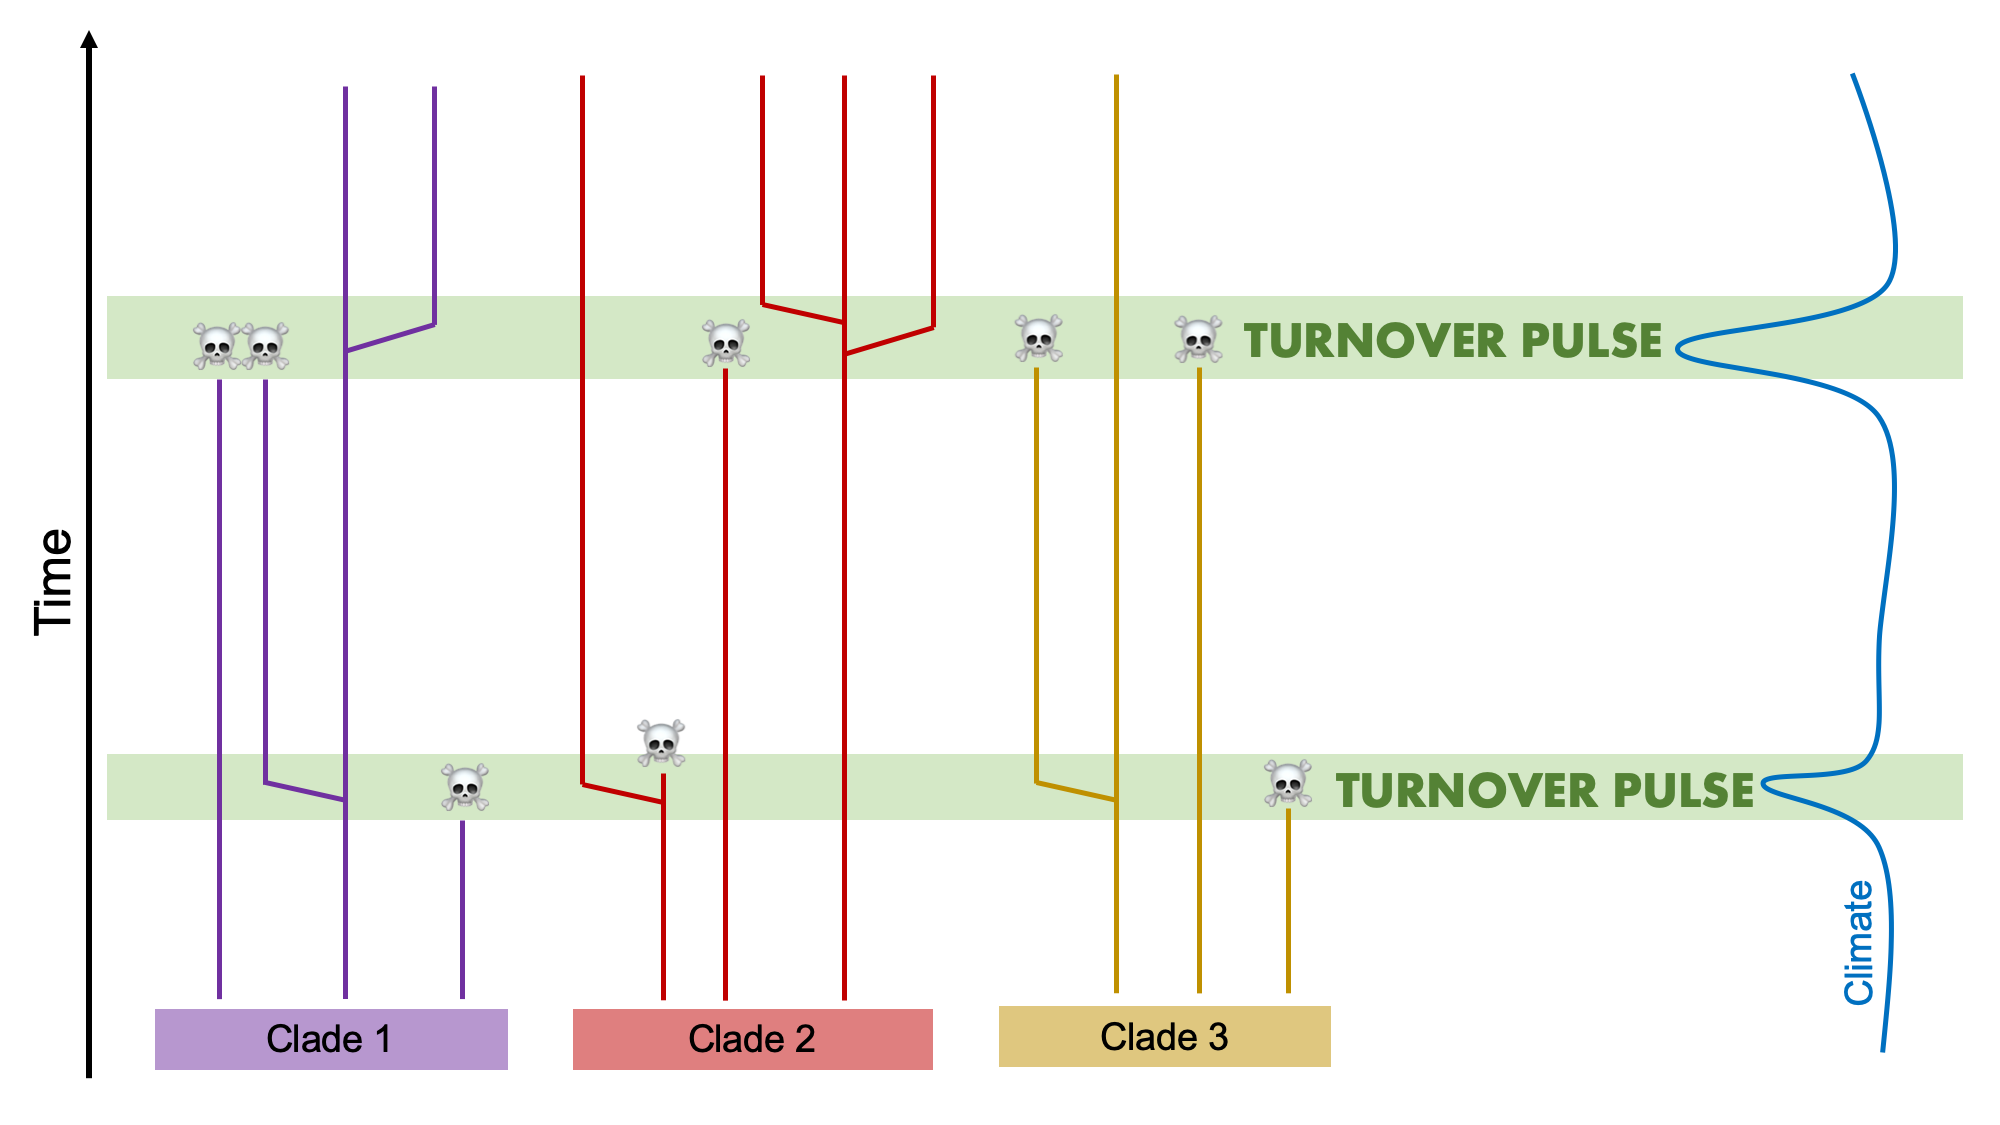 Image showing what a pattern of turnover pulse looks like.